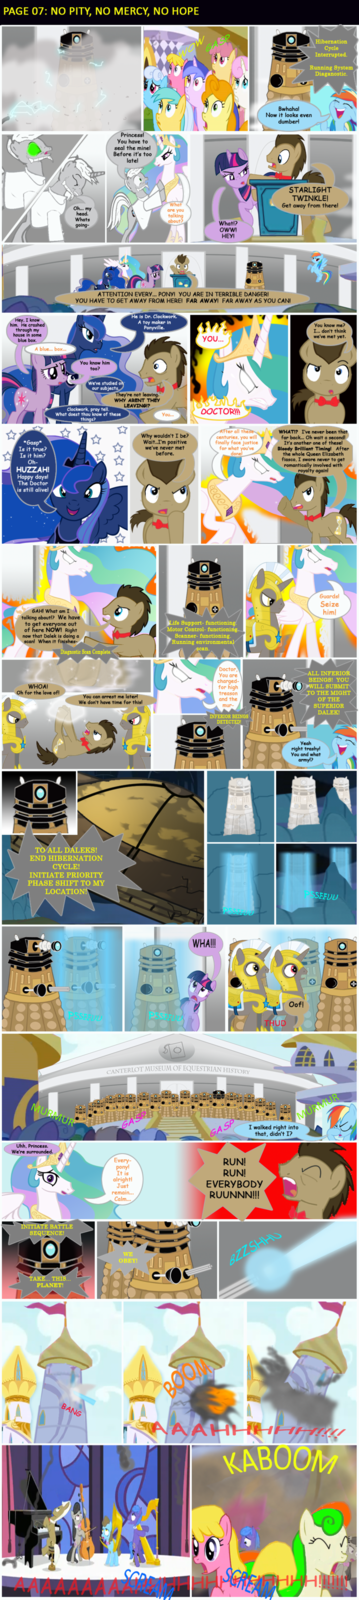 doctor_whooves__elder_page_07_by_shwiggityshwah-d4hzunk.png